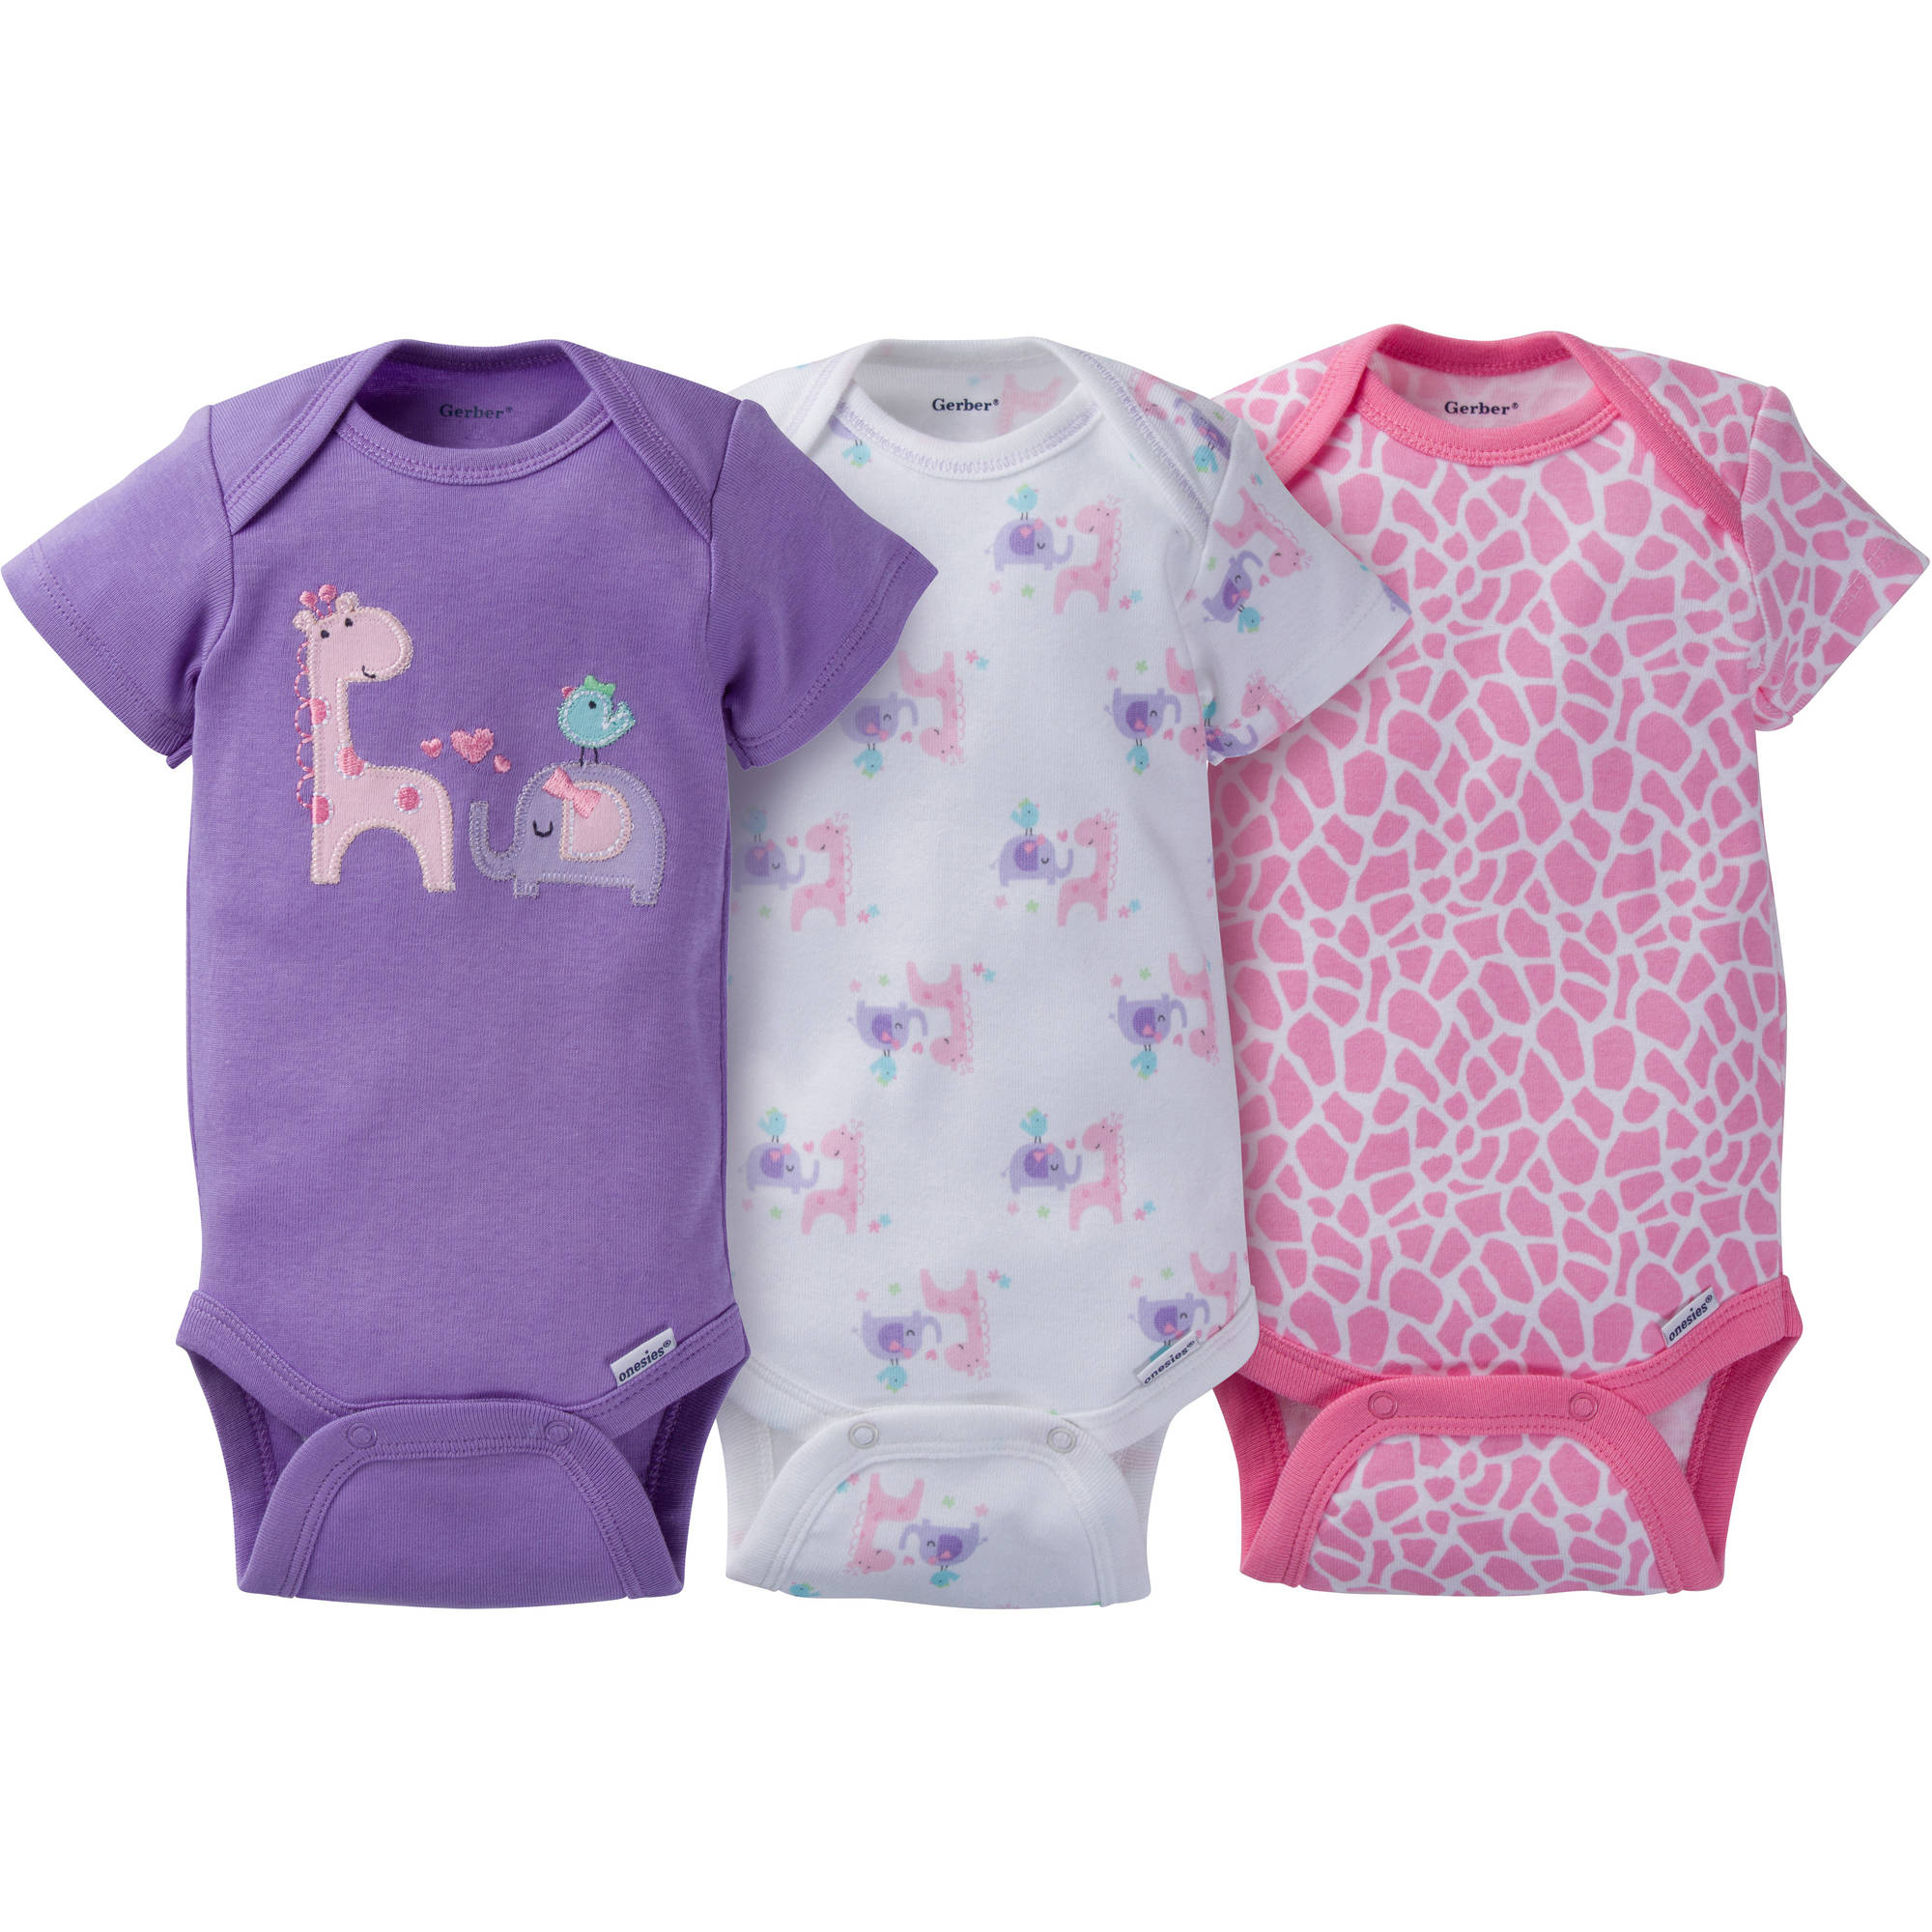 Check out the adorable collection of newborn baby girl bodysuits at The Children's Place. Shop the PLACE where big fashion meets little prices! My Place Rewards. Create An Account Check Point Balance Redeem Rewards Member Benefits. My Place Rewards Credit Card.